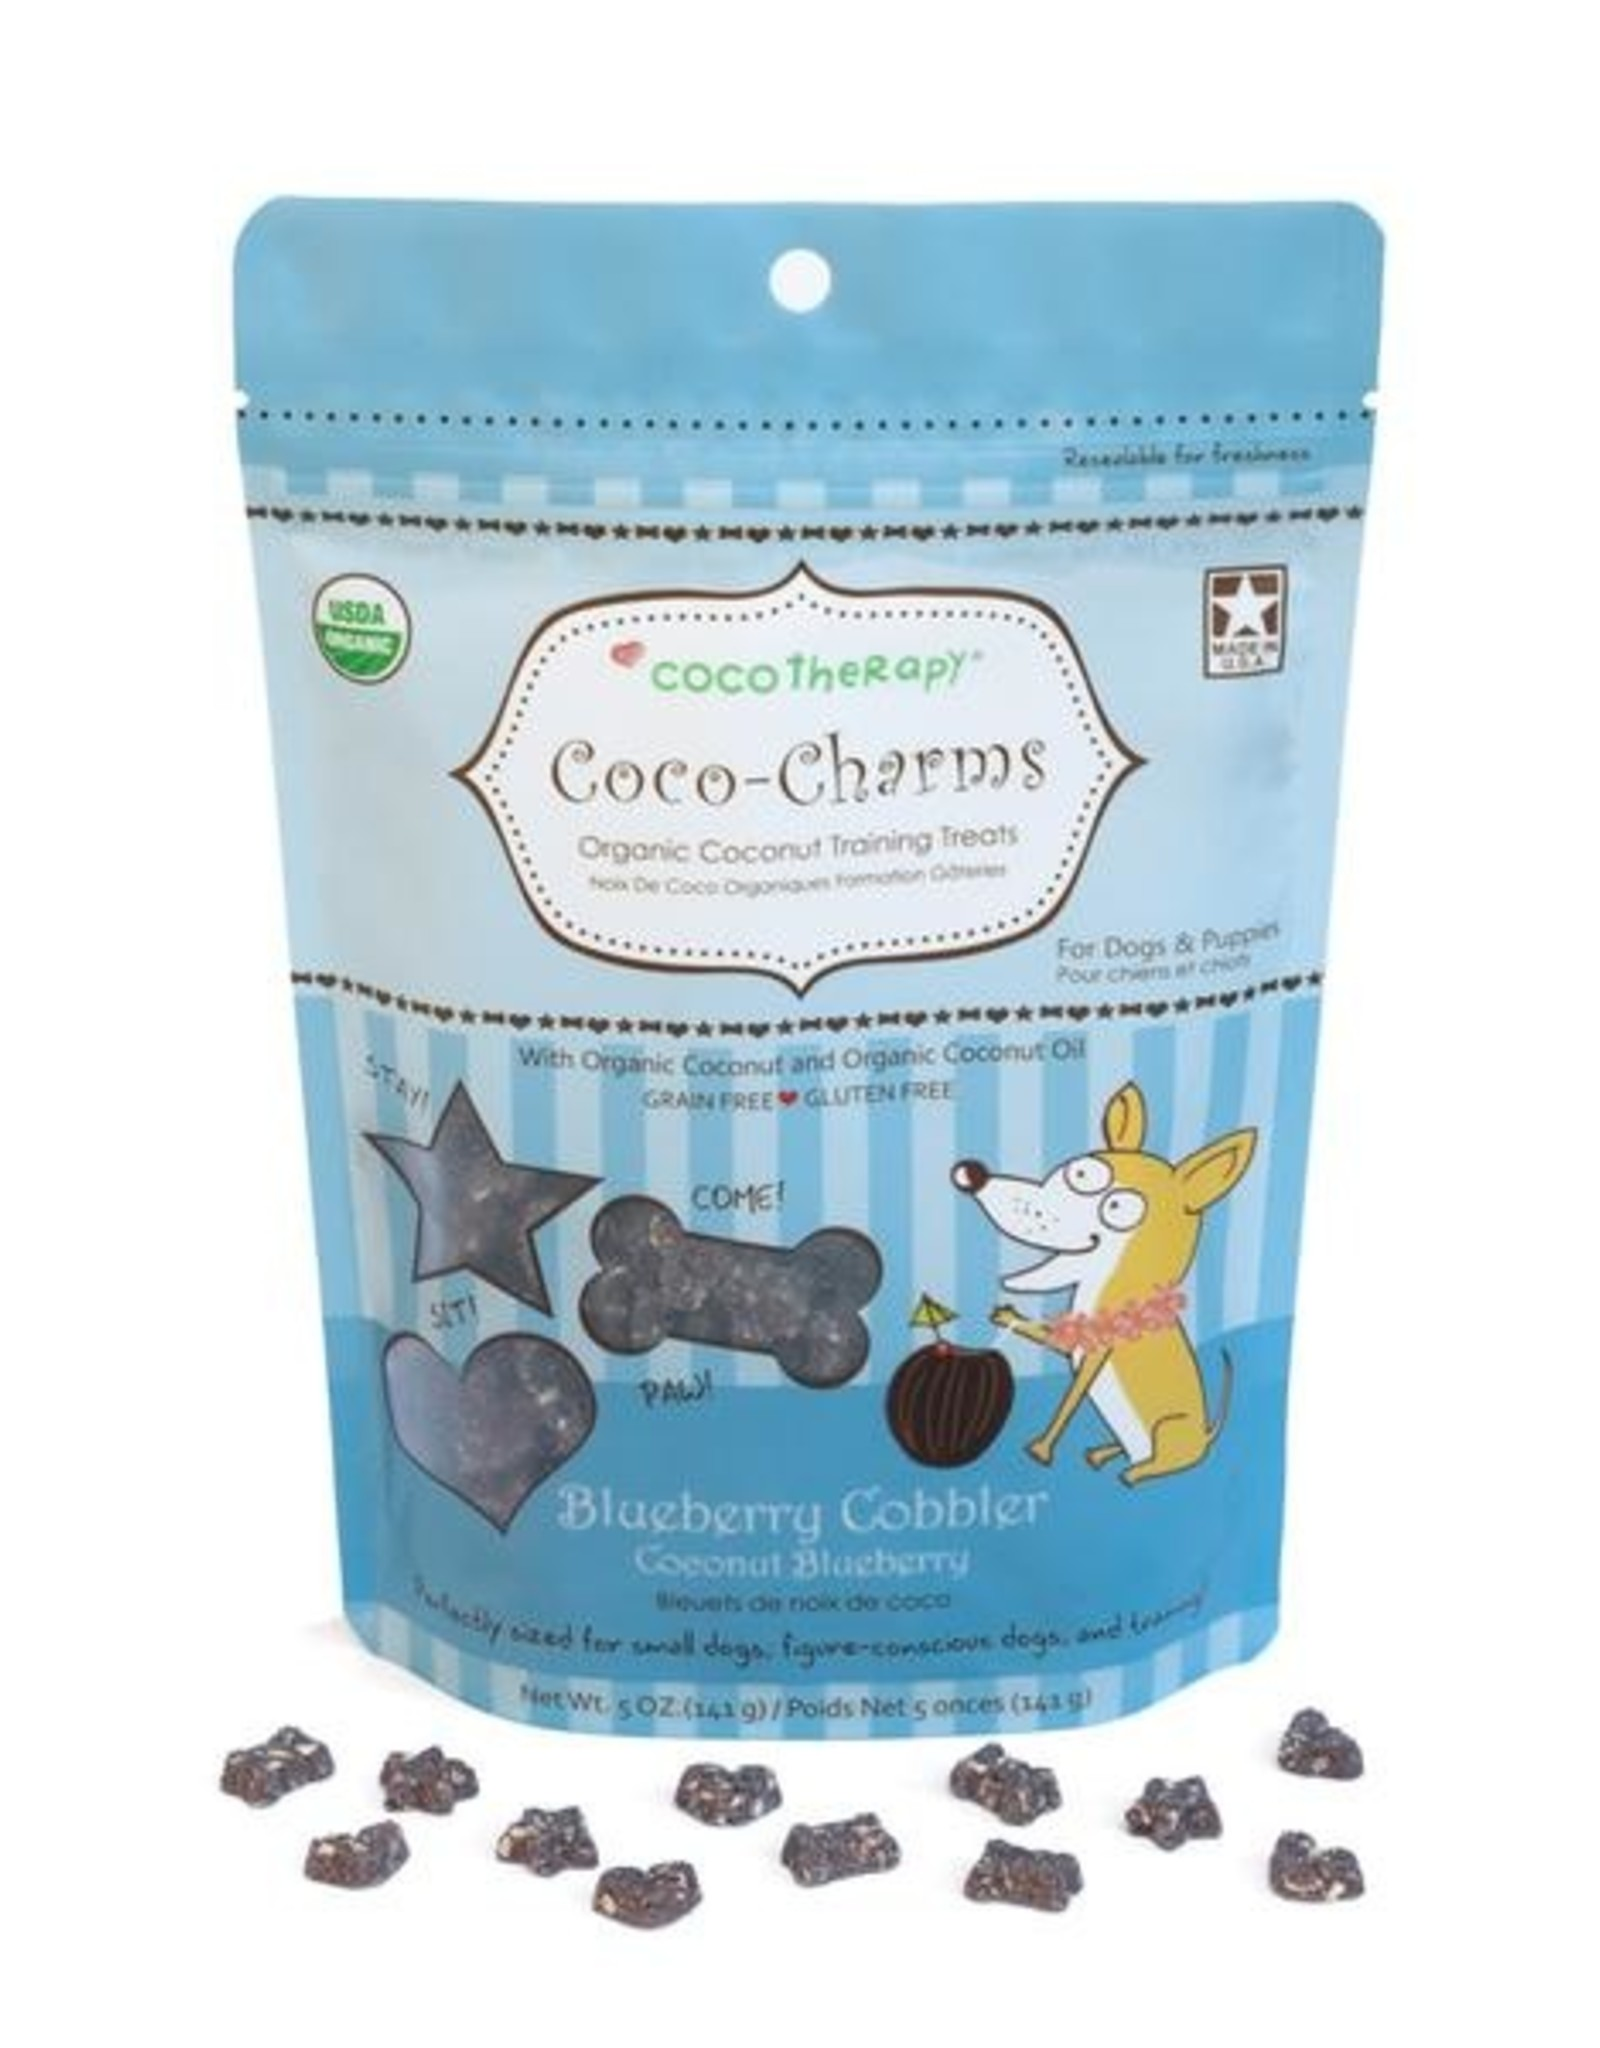 Coco Therapy Coco Charms Blueberry Cobble